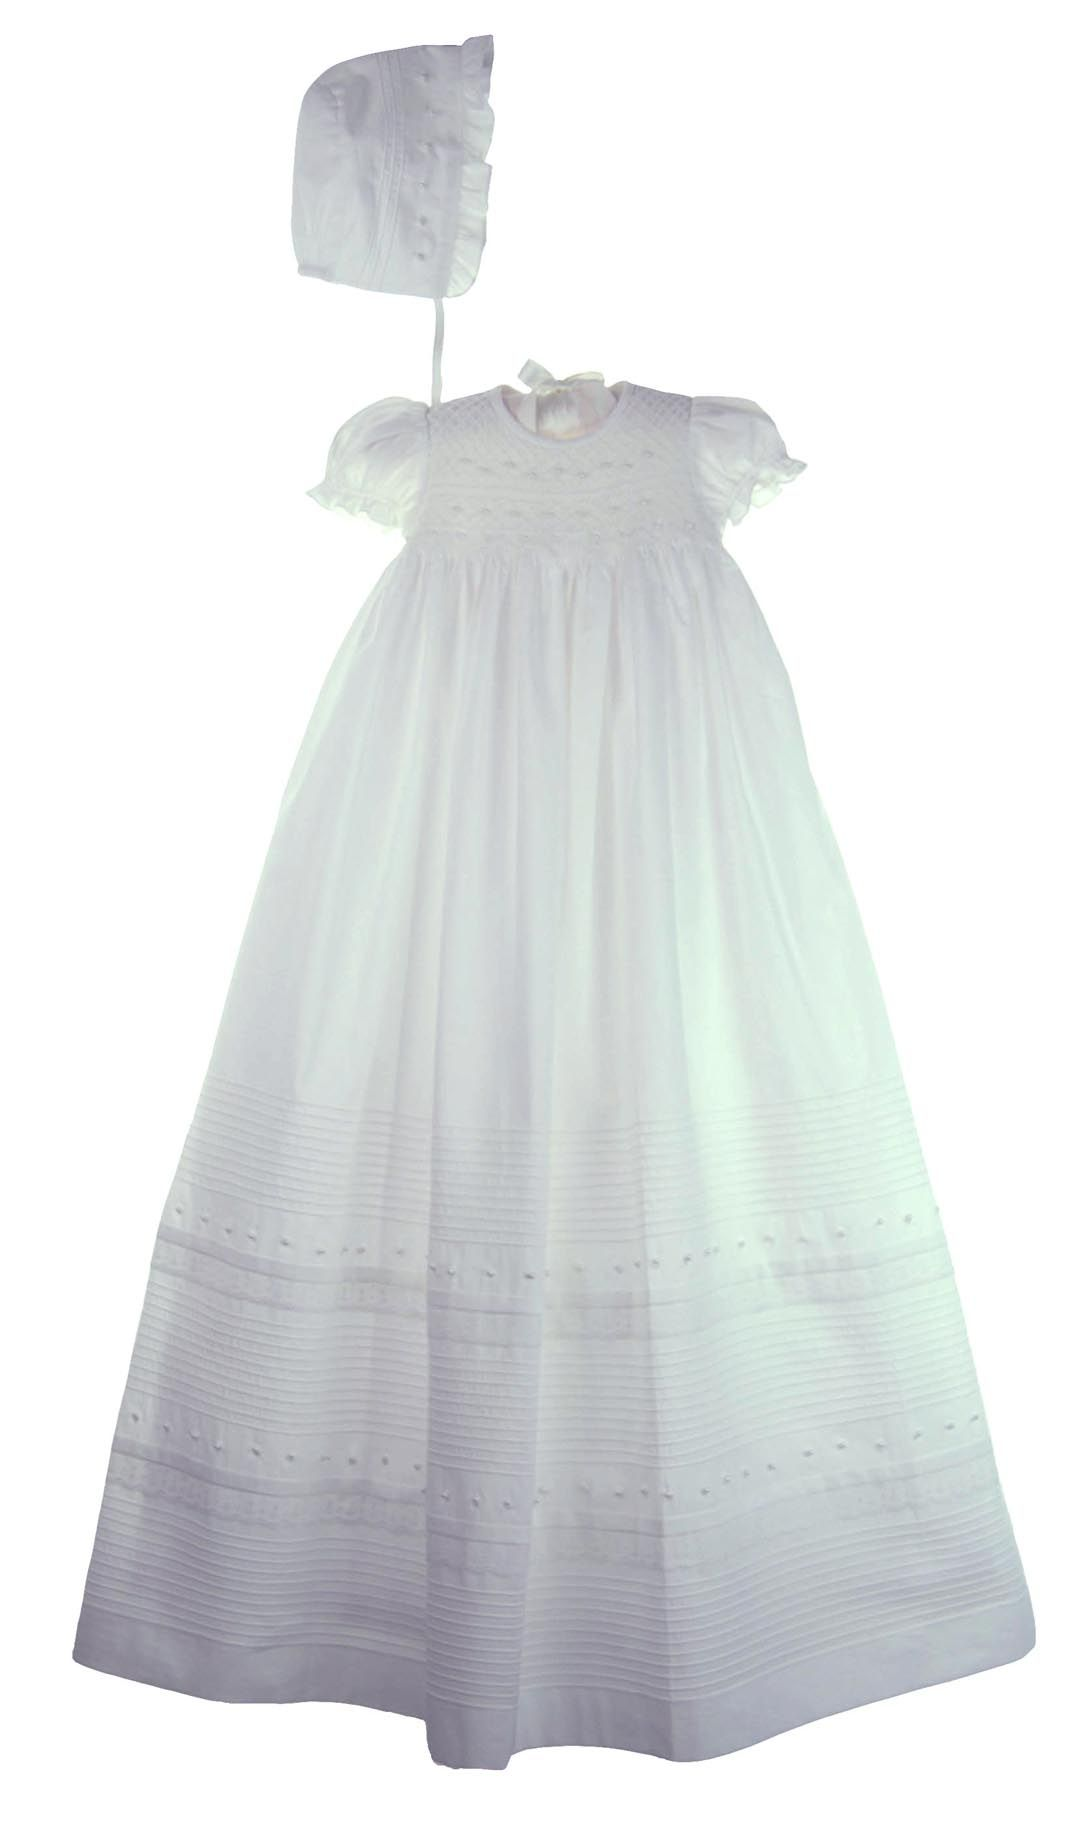 54a4e7fa4e82 NEW Will Beth White Cotton Smocked Christening Gown with Seed Pearls and  Rows of Pintucks